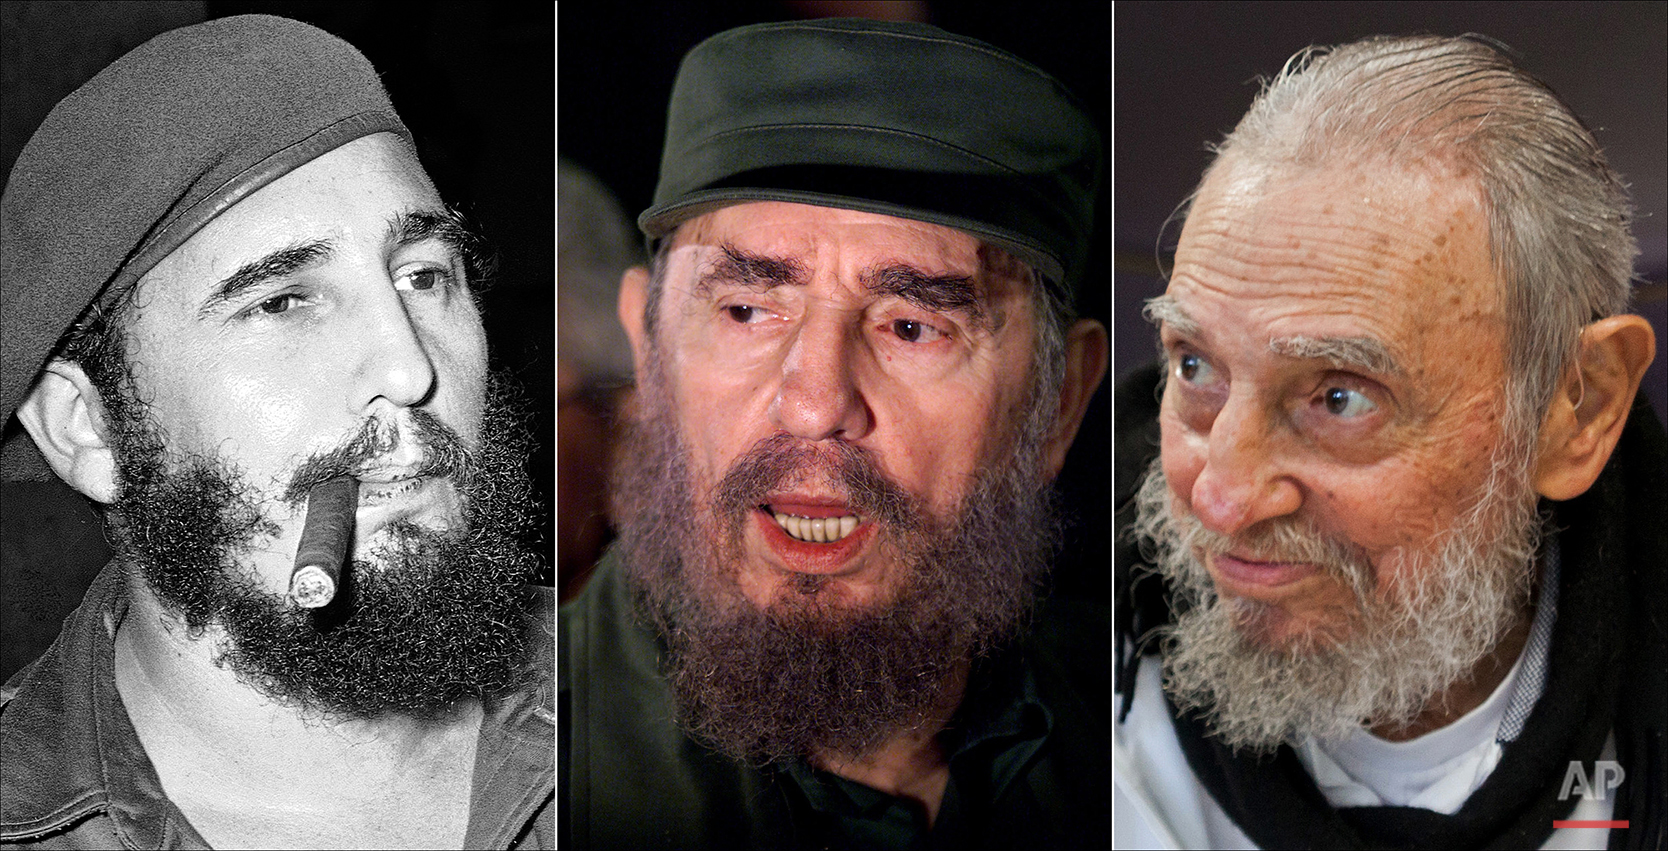 This combo of three file photos shows Fidel Castro, from left; smoking a cigar in Havana, Cuba, April 29, 1961; speaking to the media while on a mission to collect Elian Gonzales in Washington, D.C., April 6, 2000; and at his Havana home on Feb. 13, 2016. The man who nationalized the Cuban economy and controlled virtually every aspect of life on the island celebrates his 90th birthday on Saturday, Aug. 13, 2016, in a far different country than the one he ruled for decades. (AP Photos)